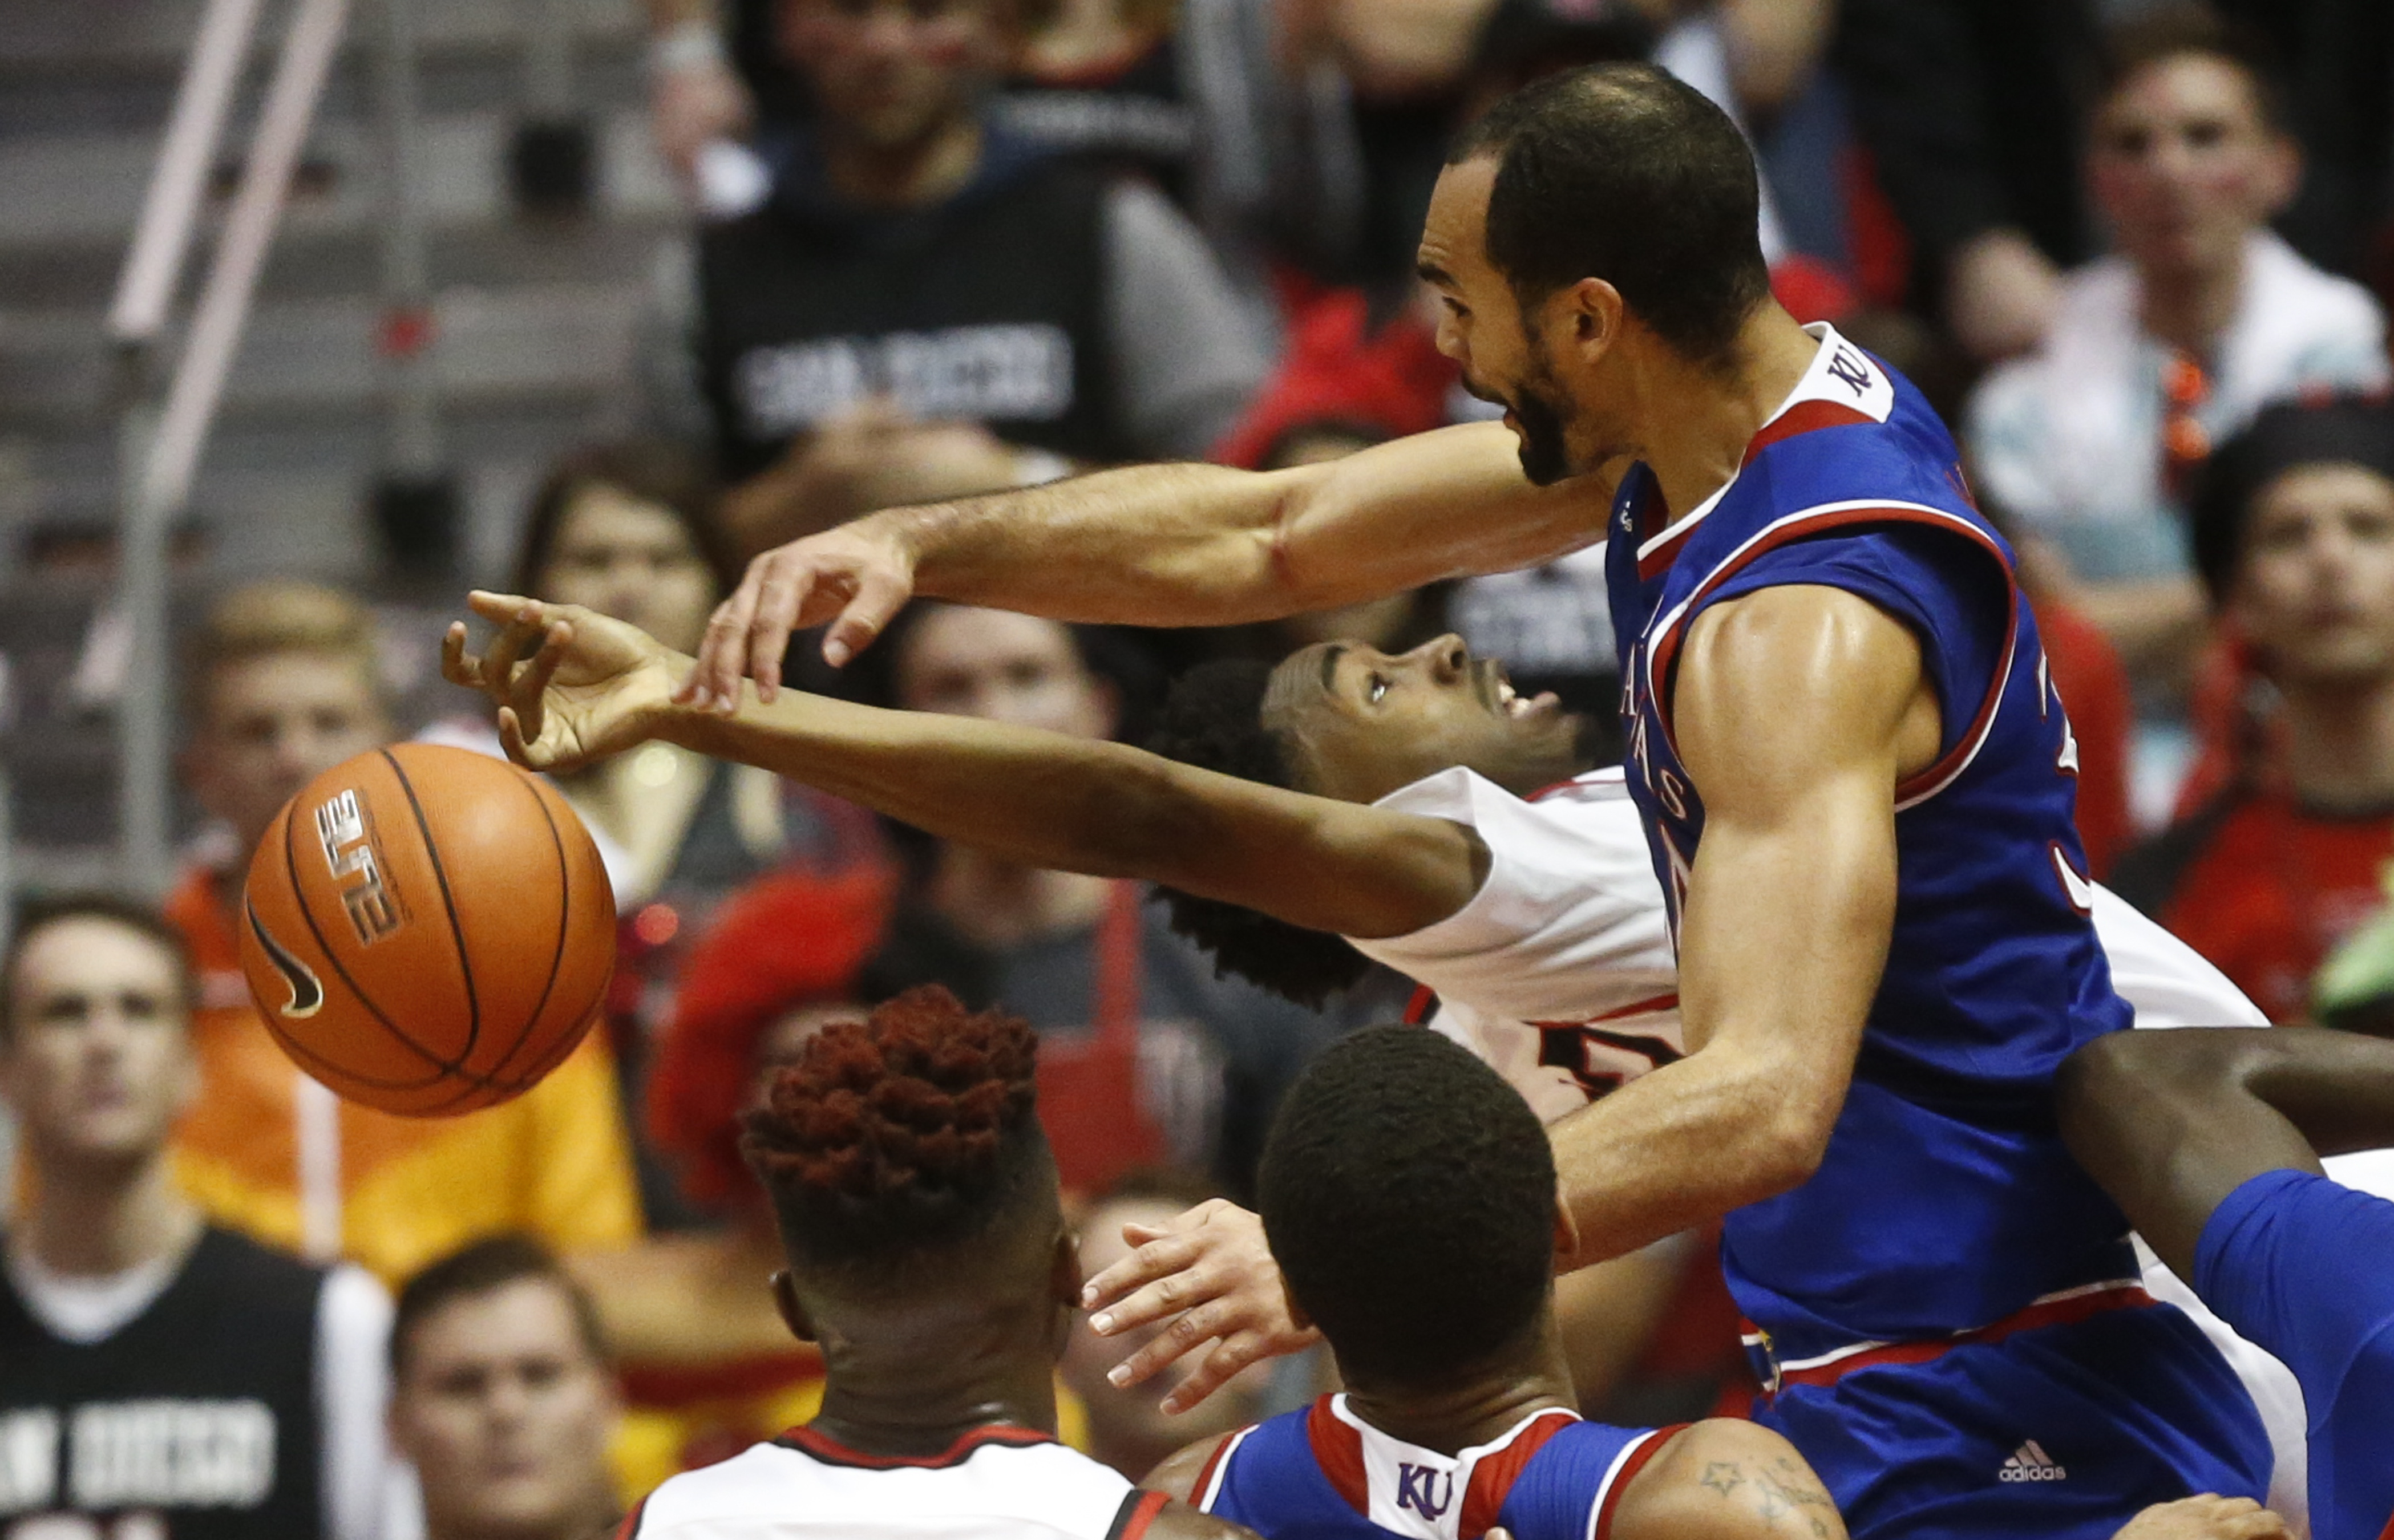 Kansas forward Perry Ellis blocks the shot of San Diego State guard Jeremy Hemsley during the first half of an NCAA college basketball game Tuesday, Dec. 22, 2015, in San Diego. (AP Photo/Lenny Ignelzi)